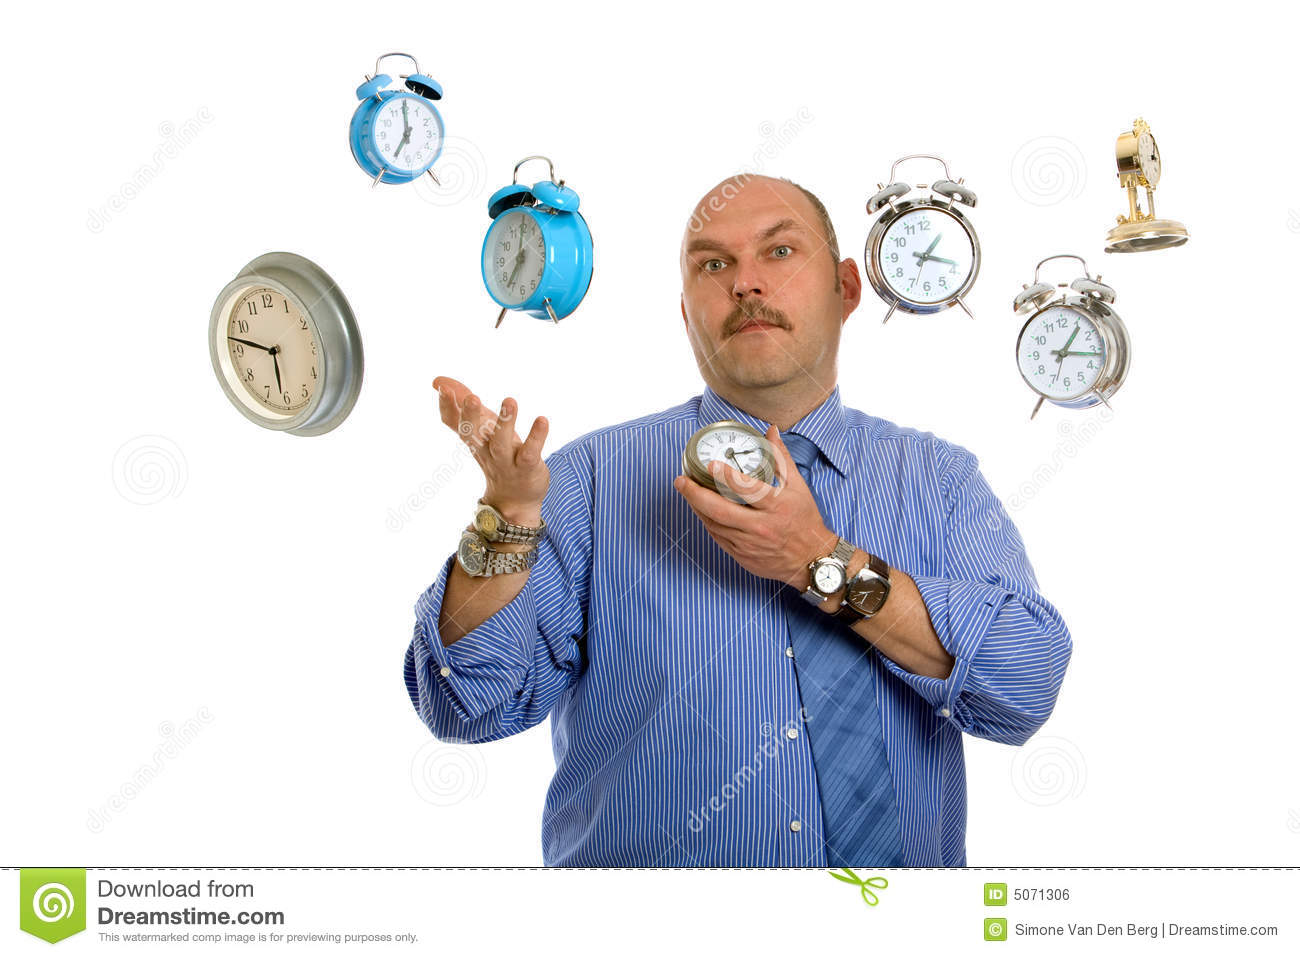 http://thumbs.dreamstime.com/z/juggling-time-5071306.jpg